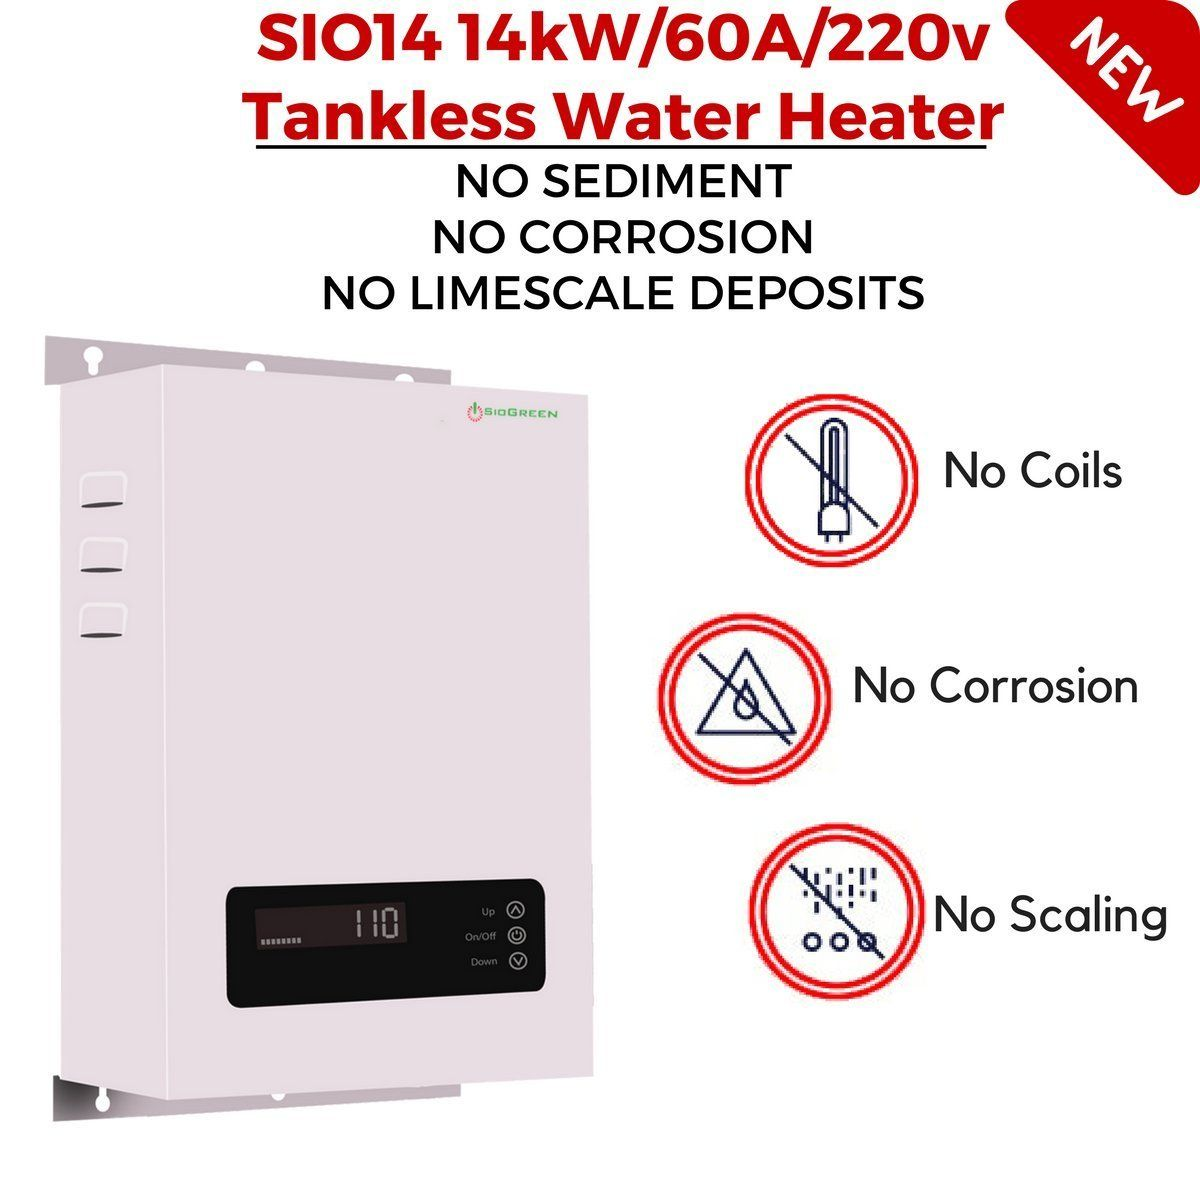 6 Best Electric Tankless Water Heater Plus 2 To Avoid 2020 Buyers Guide Freshnss In 2020 Tankless Water Heater Water Heater Heater